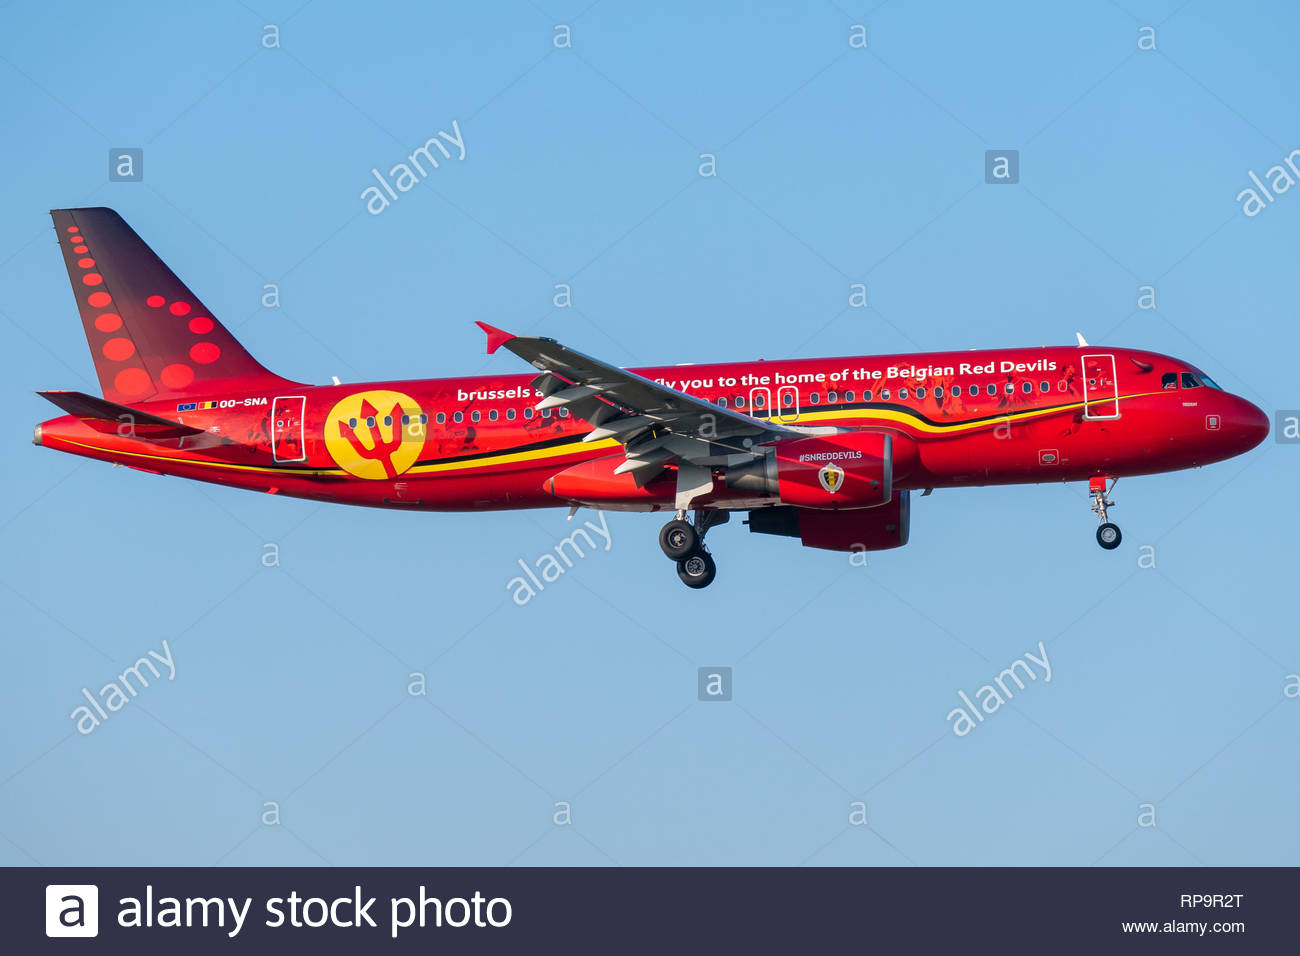 A Brussels Airlines Airbus A320 on short final for runway 07 at Brussels International Airport, wearing a special RED DEVILS livery - Stock Image